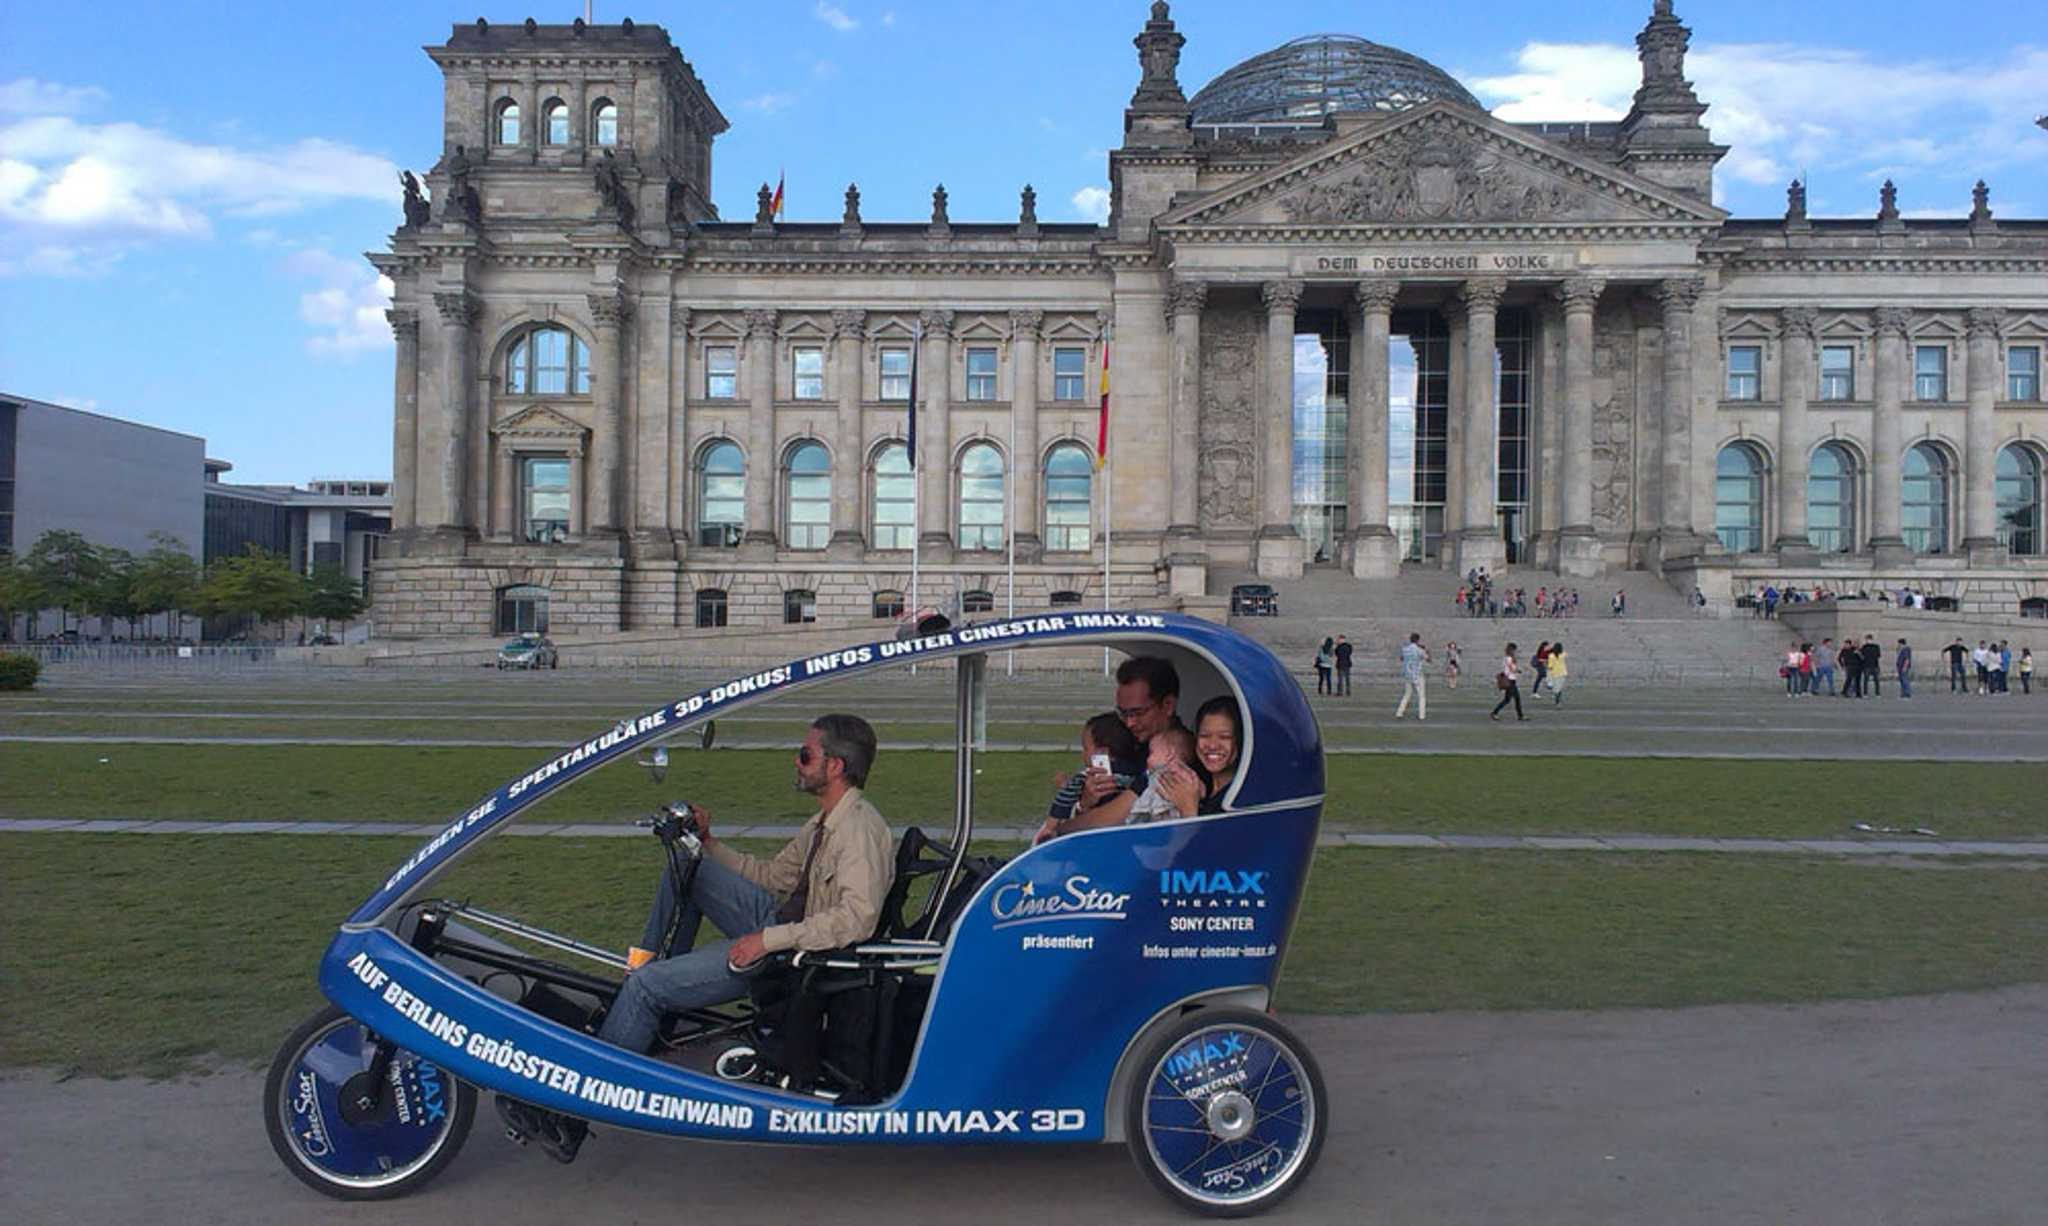 Cruising past the iconic Bundestag in a BikeTaxi